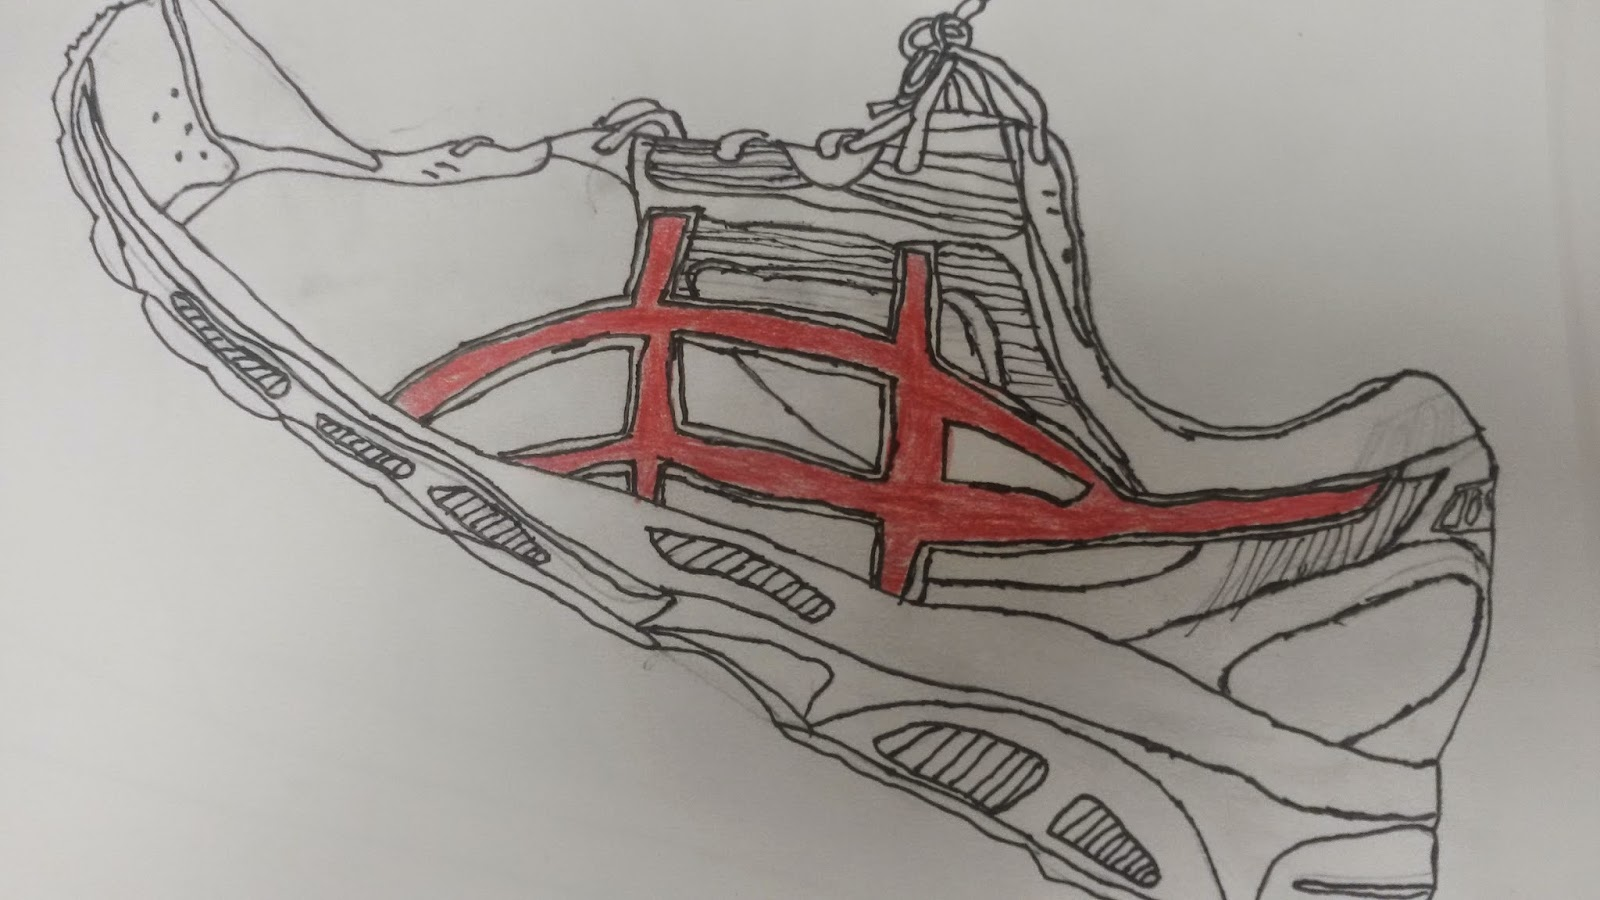 Contour Line Drawing Shoes Lesson Plan : Artolazzi: observational shoe drawing